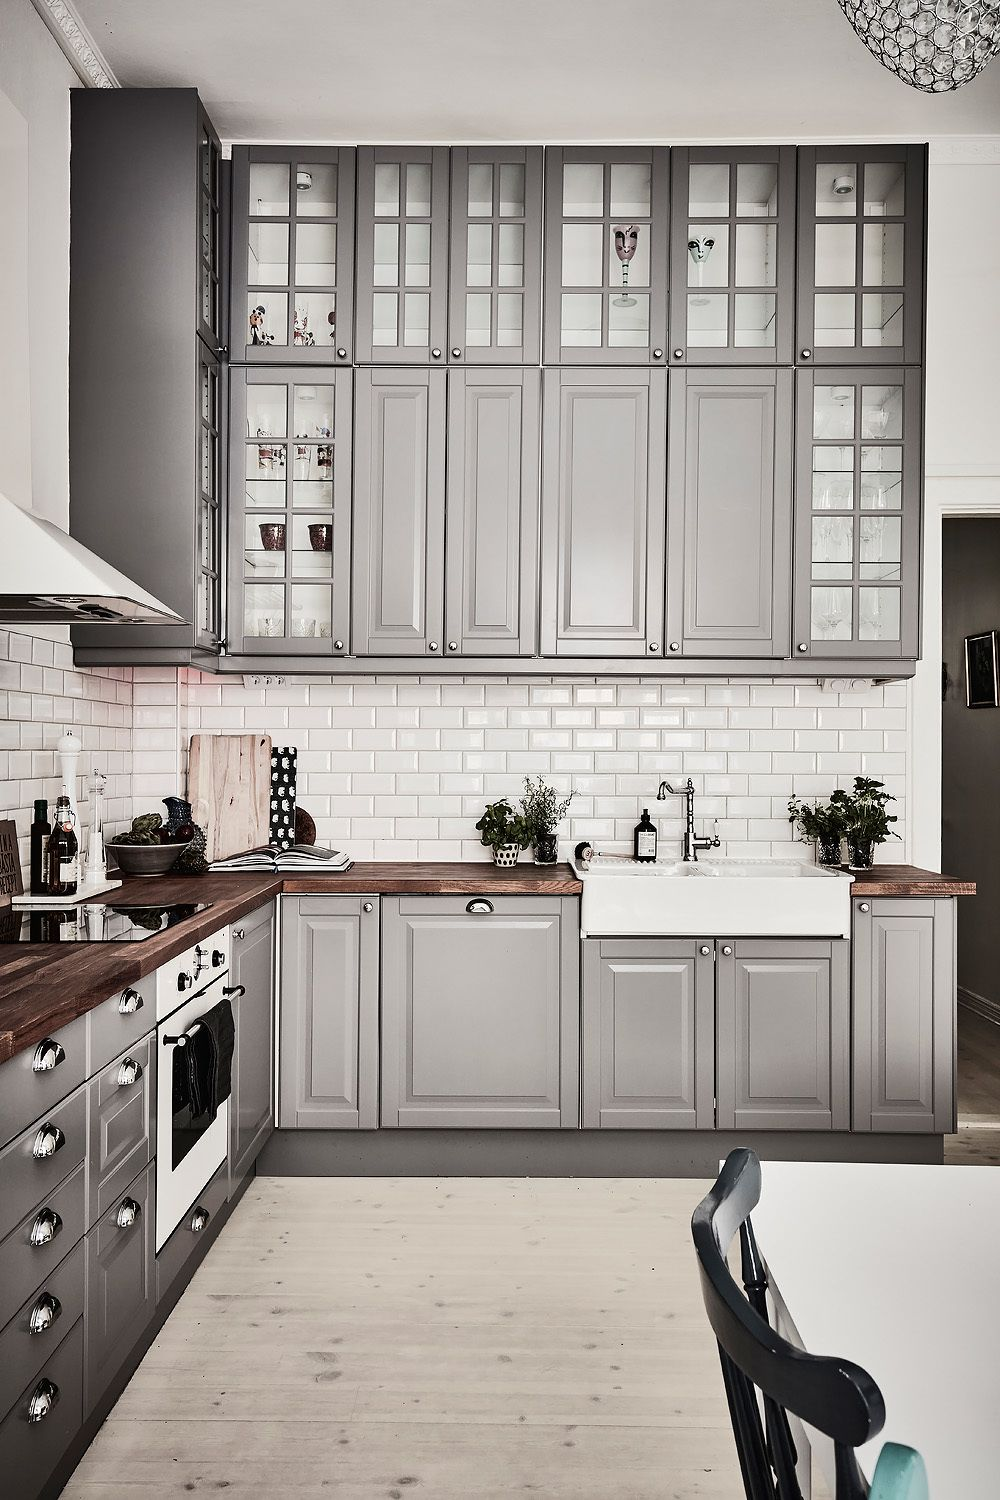 Inspiring Kitchens You Wont Believe Are IKEA Decorating Tips - Where to buy grey kitchen cabinets